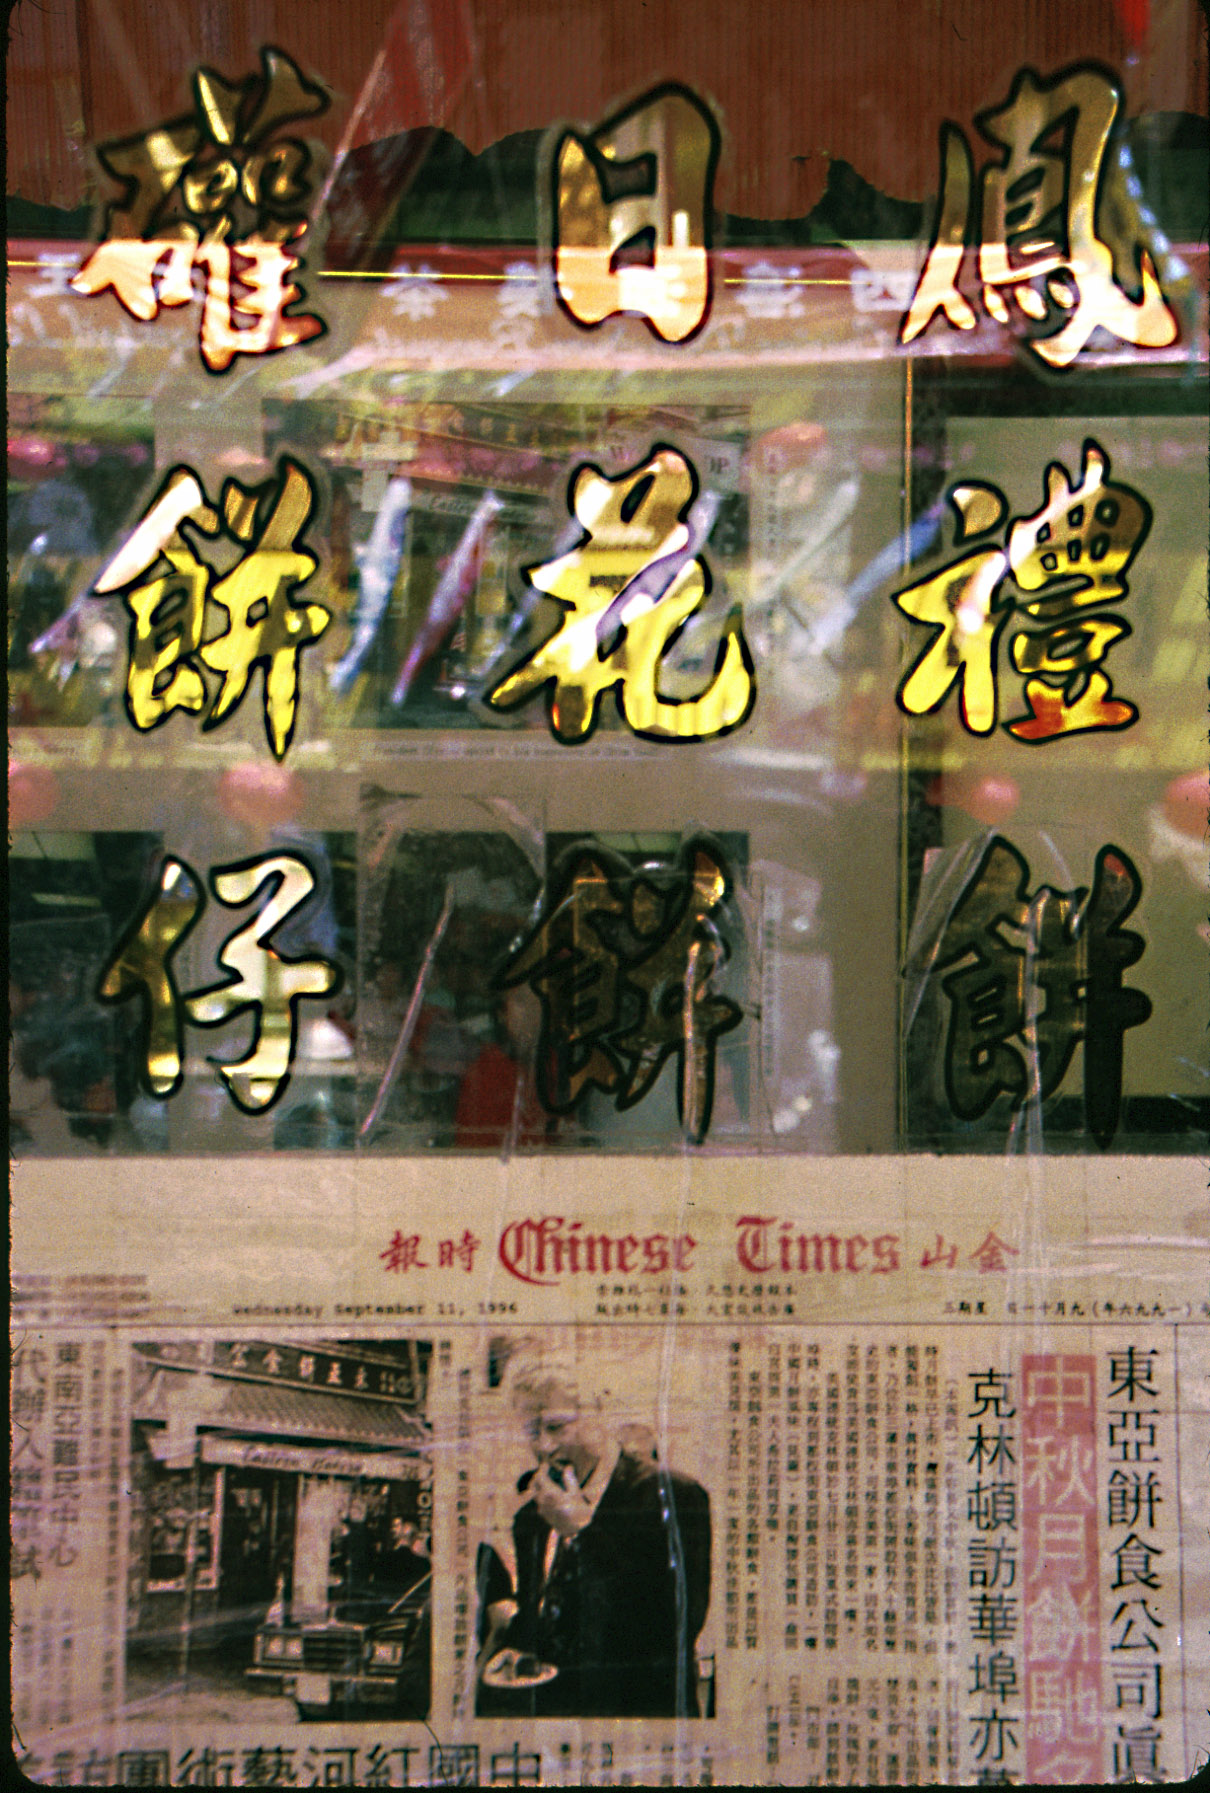 Chinese Times, by Richter